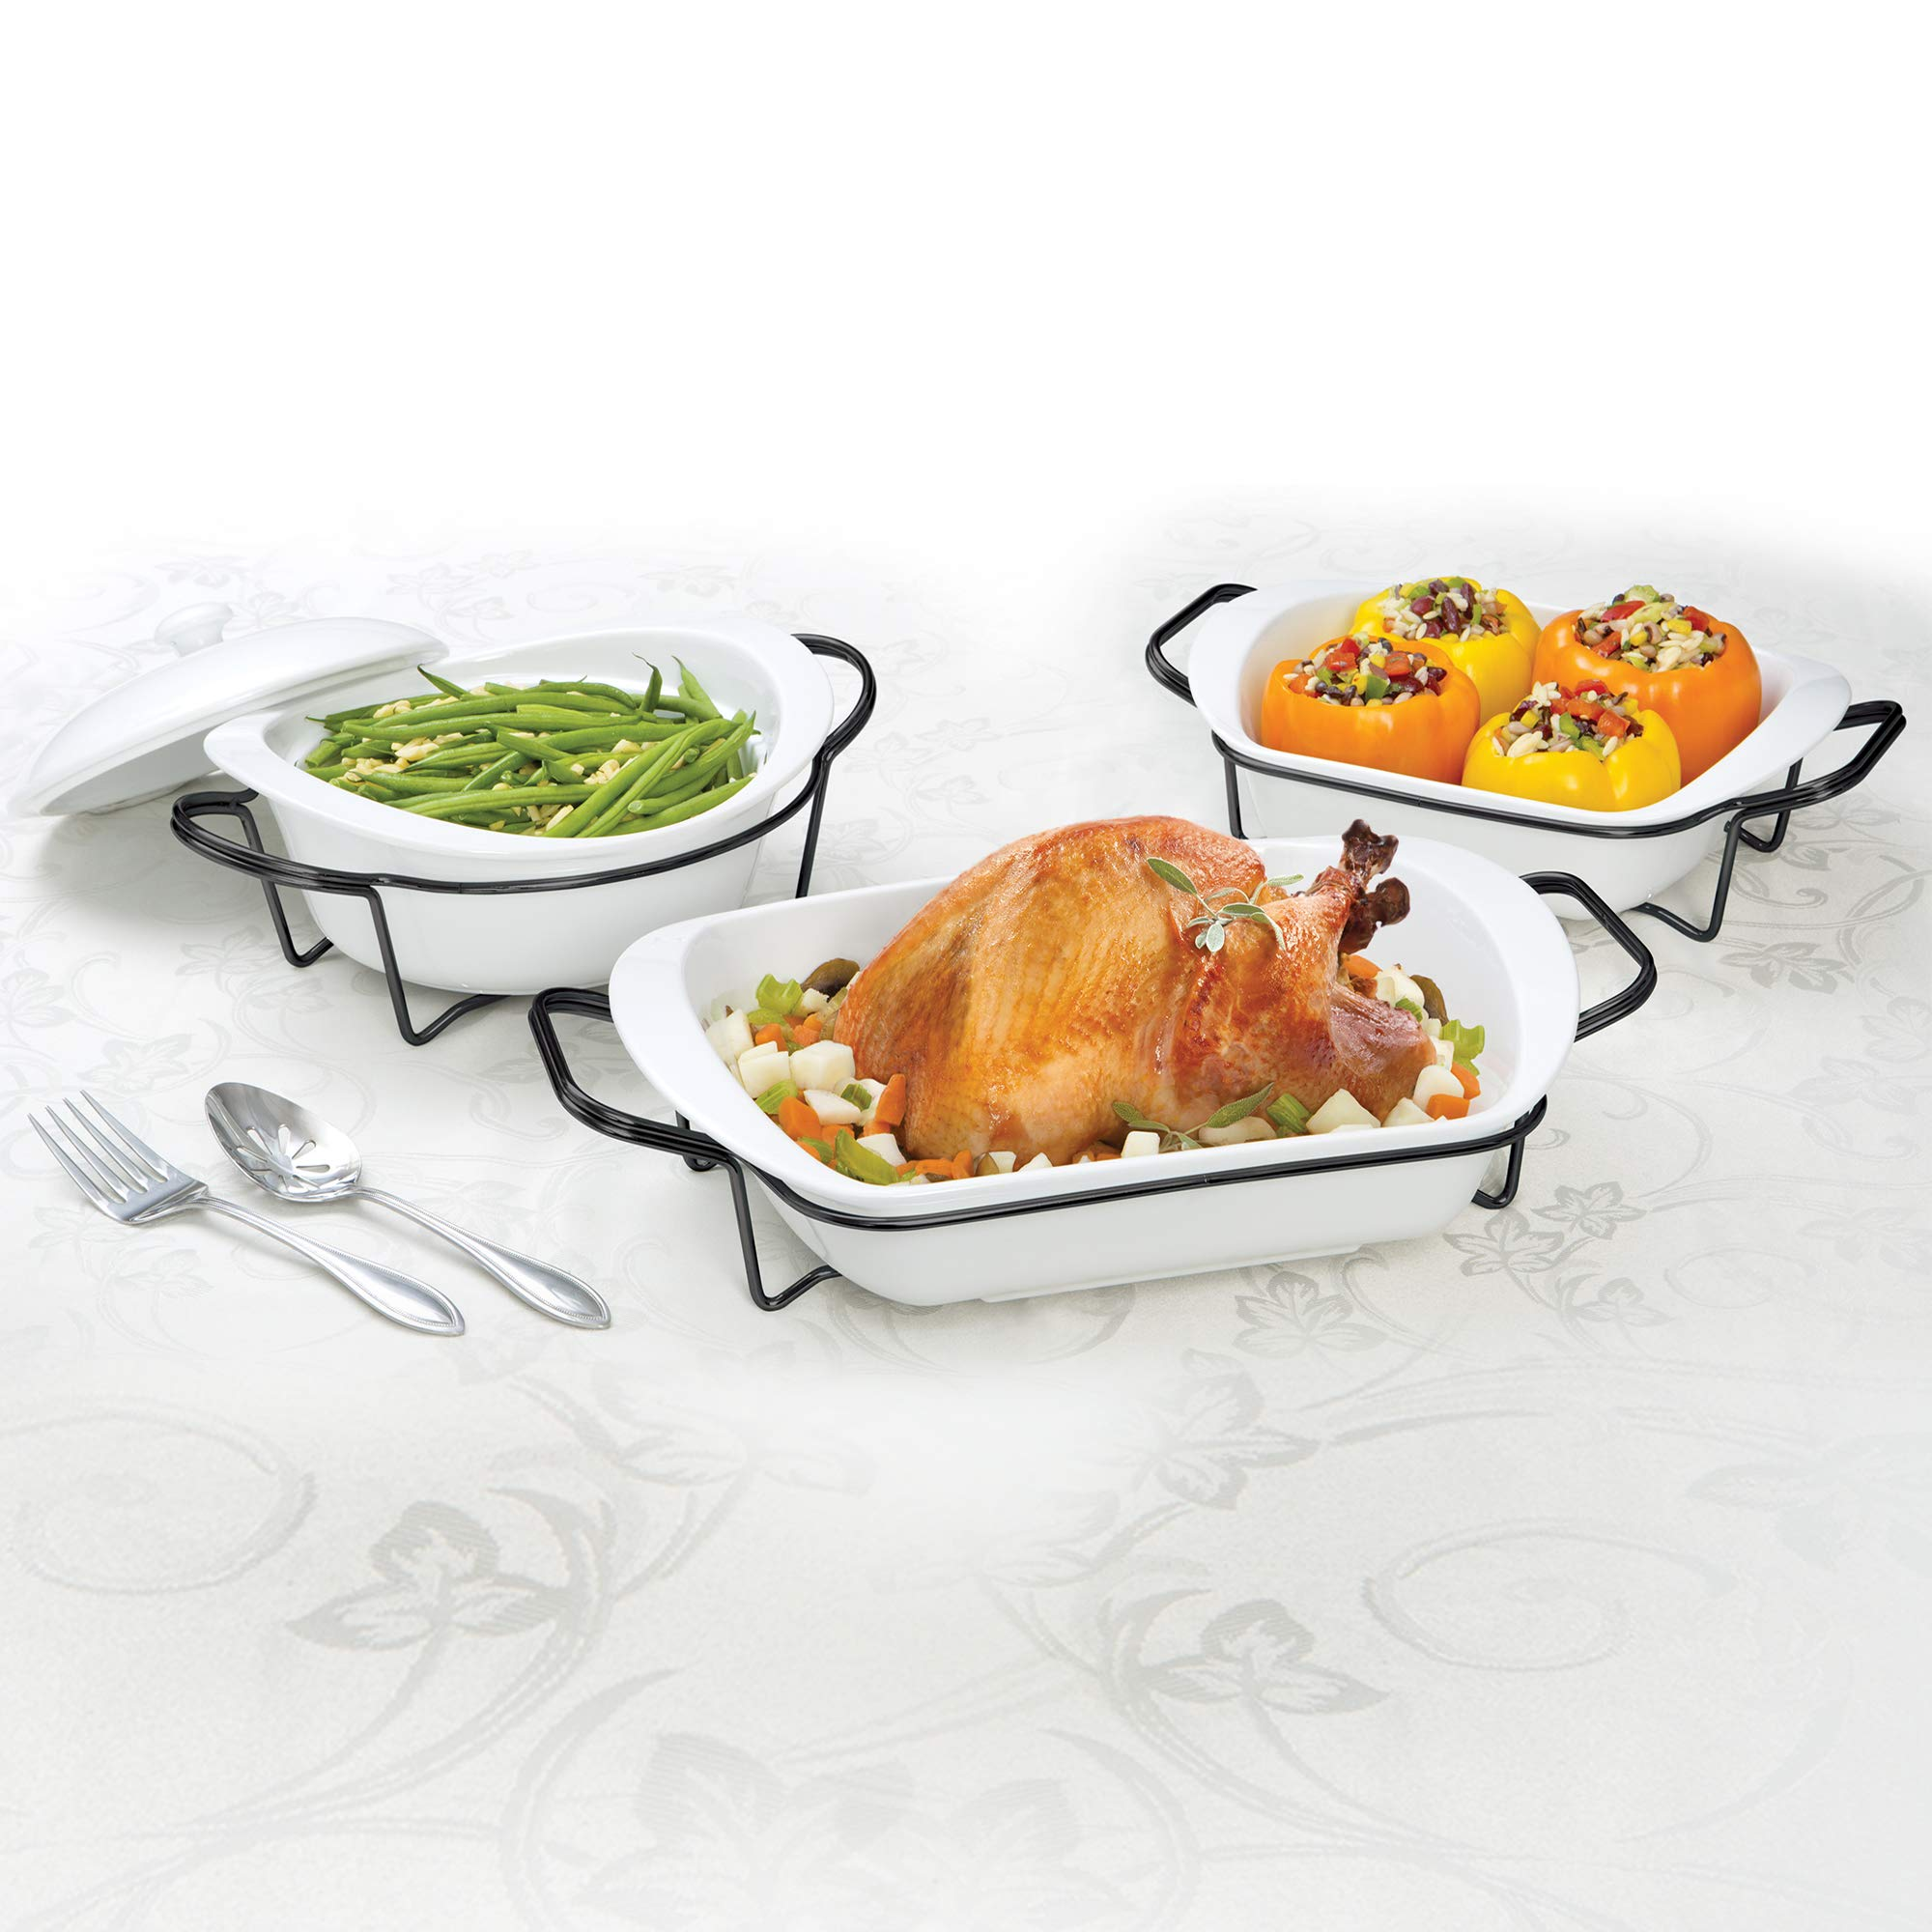 Certified International 89665 7 Piece Porcelain Set Cookware, Bakeware, Cooking Accessories, White